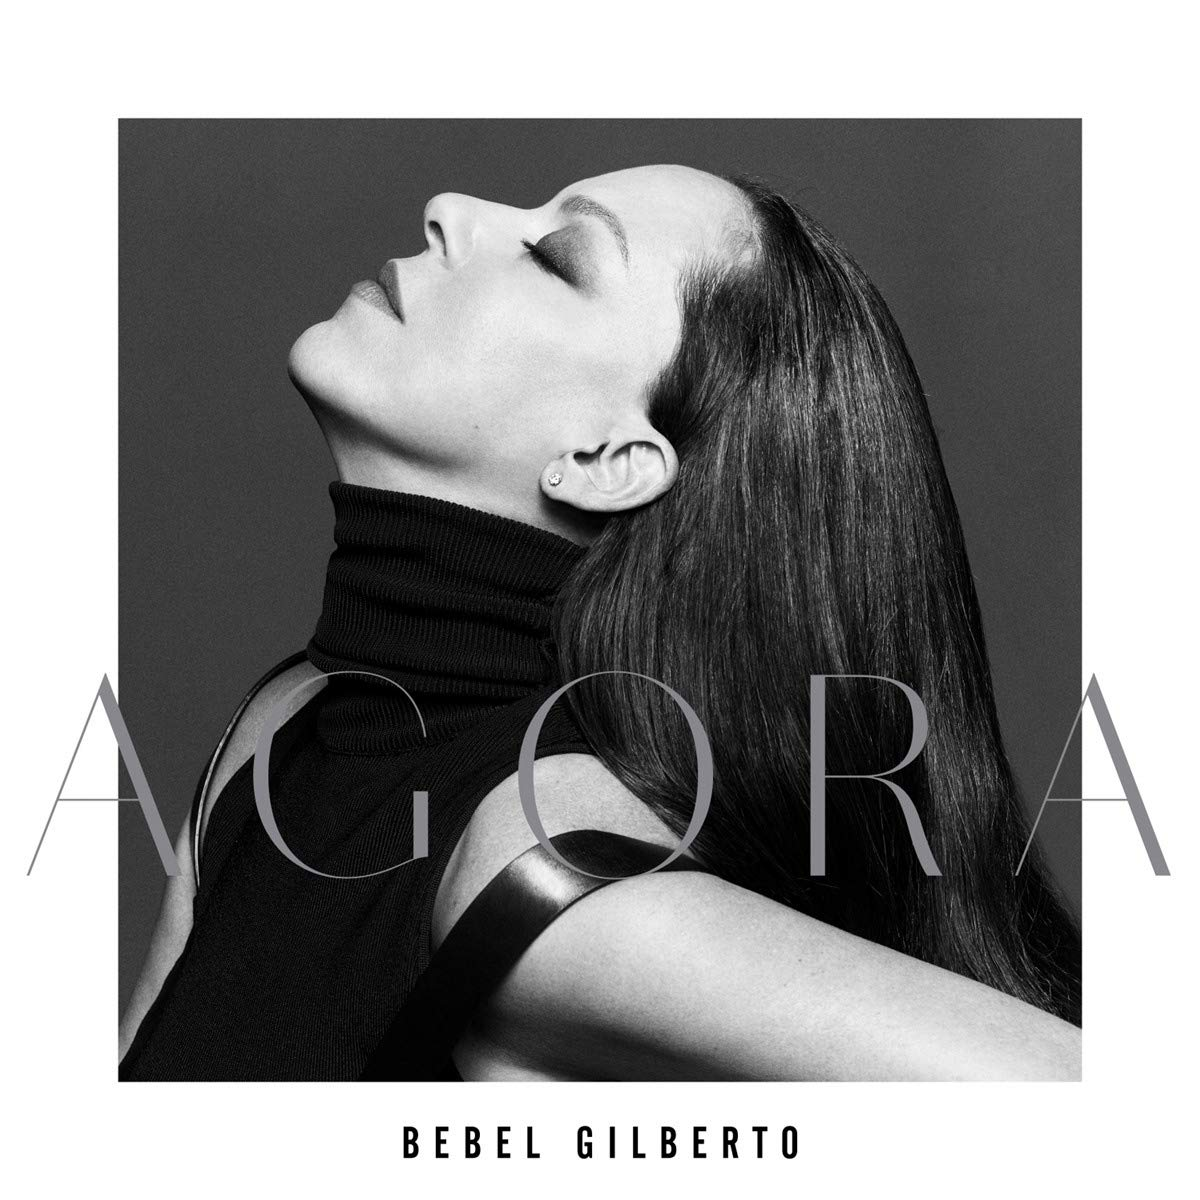 GILBERTO, BEBEL - Agora - Amazon.com Music